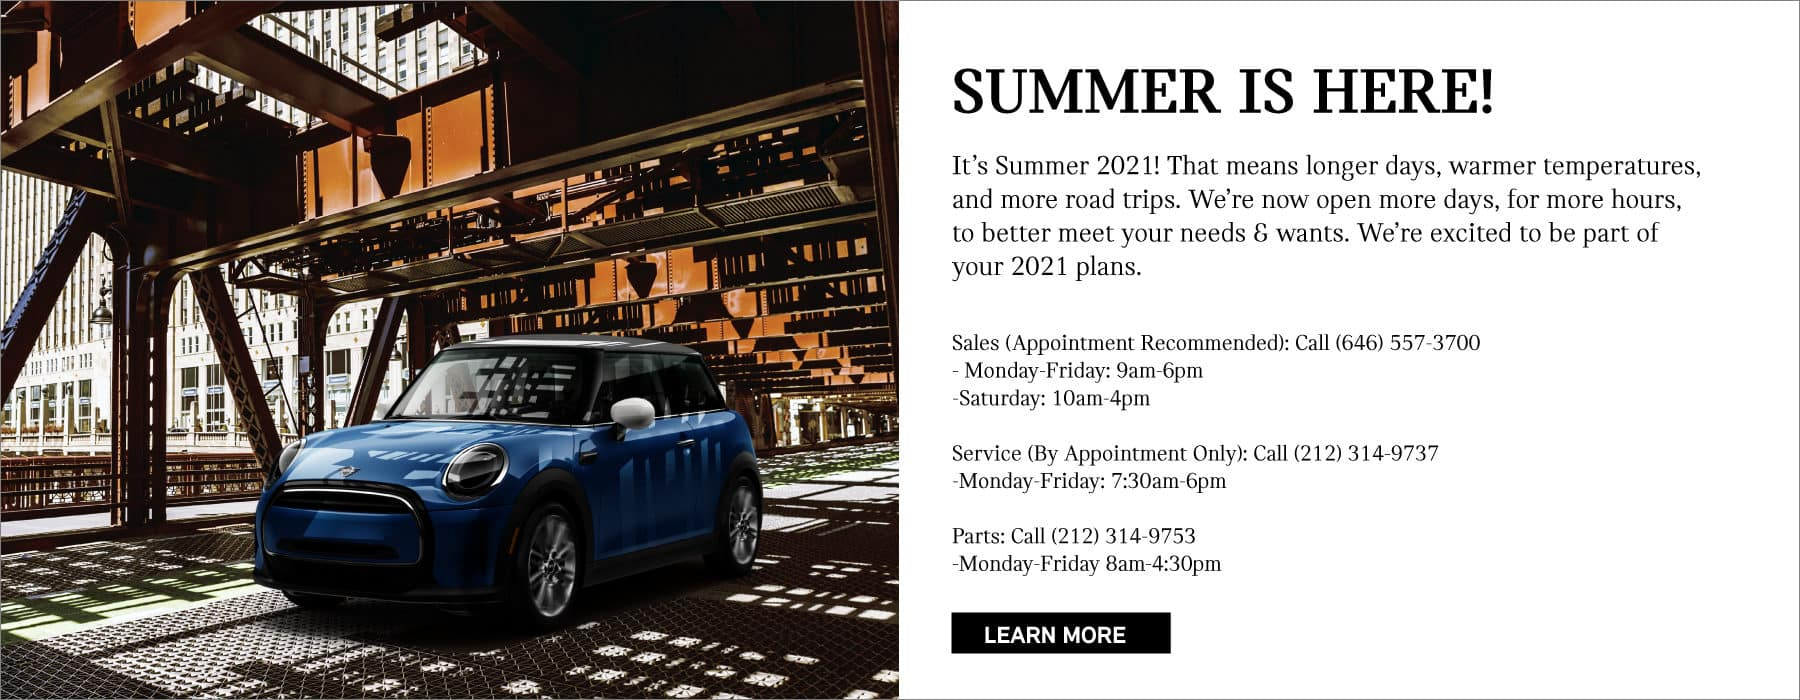 Summer is here! We're now open more days, for more hours. Sales: M-F 9am-6pm Sunday 10am-4pm *appointment recomended Service: M-F 7:30am-6pm *By appointment only Parts: M-F 8am-4:30pm